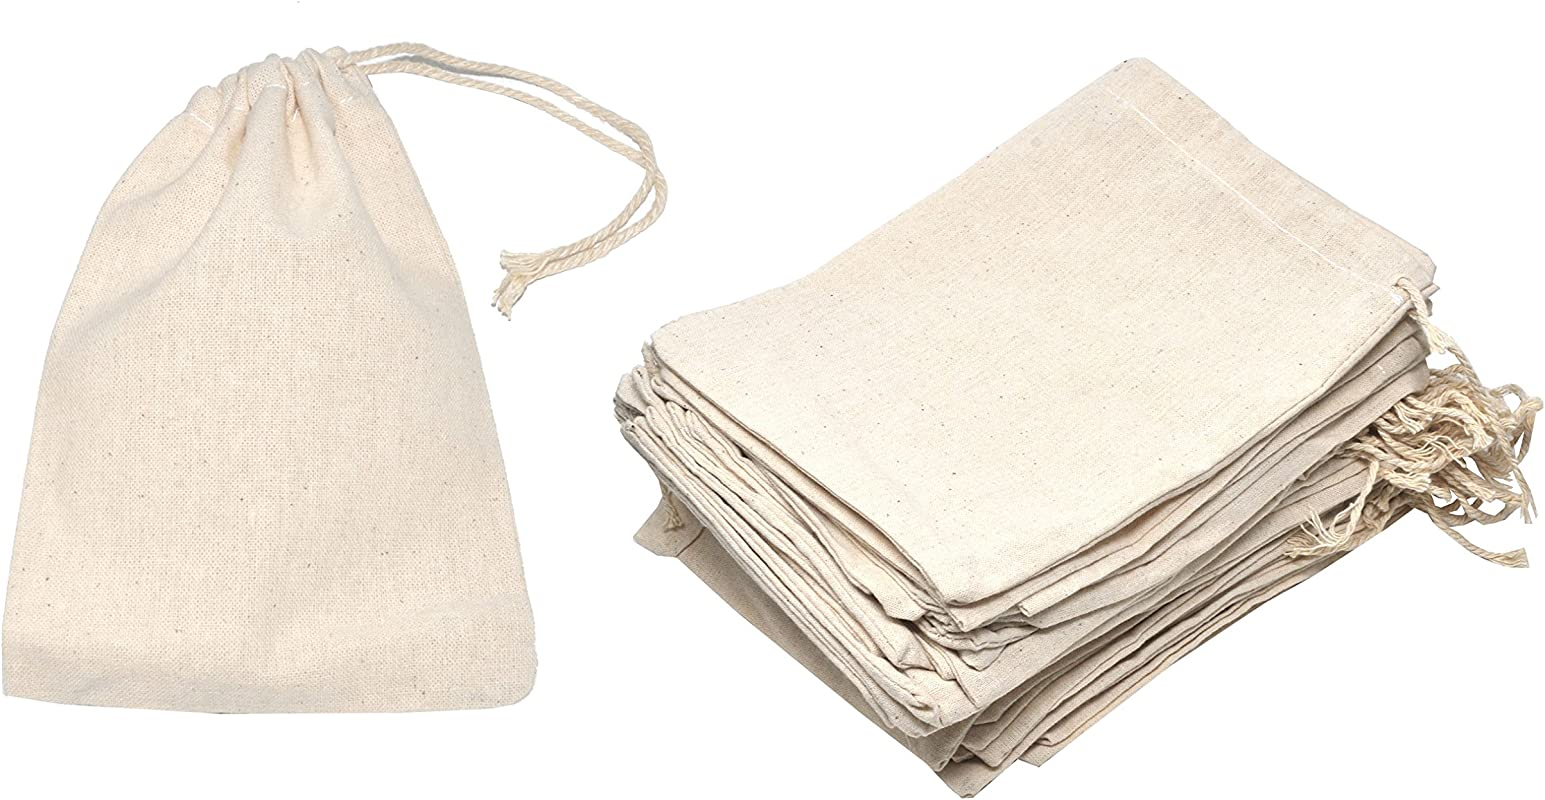 Mandala Crafts Bulk Unbleached Fabric Cloth Cotton Muslin Sachet Bags With Drawstring For Soap Spice Tea Favor Gift 5 X 7 Inches 50 Count Ivory